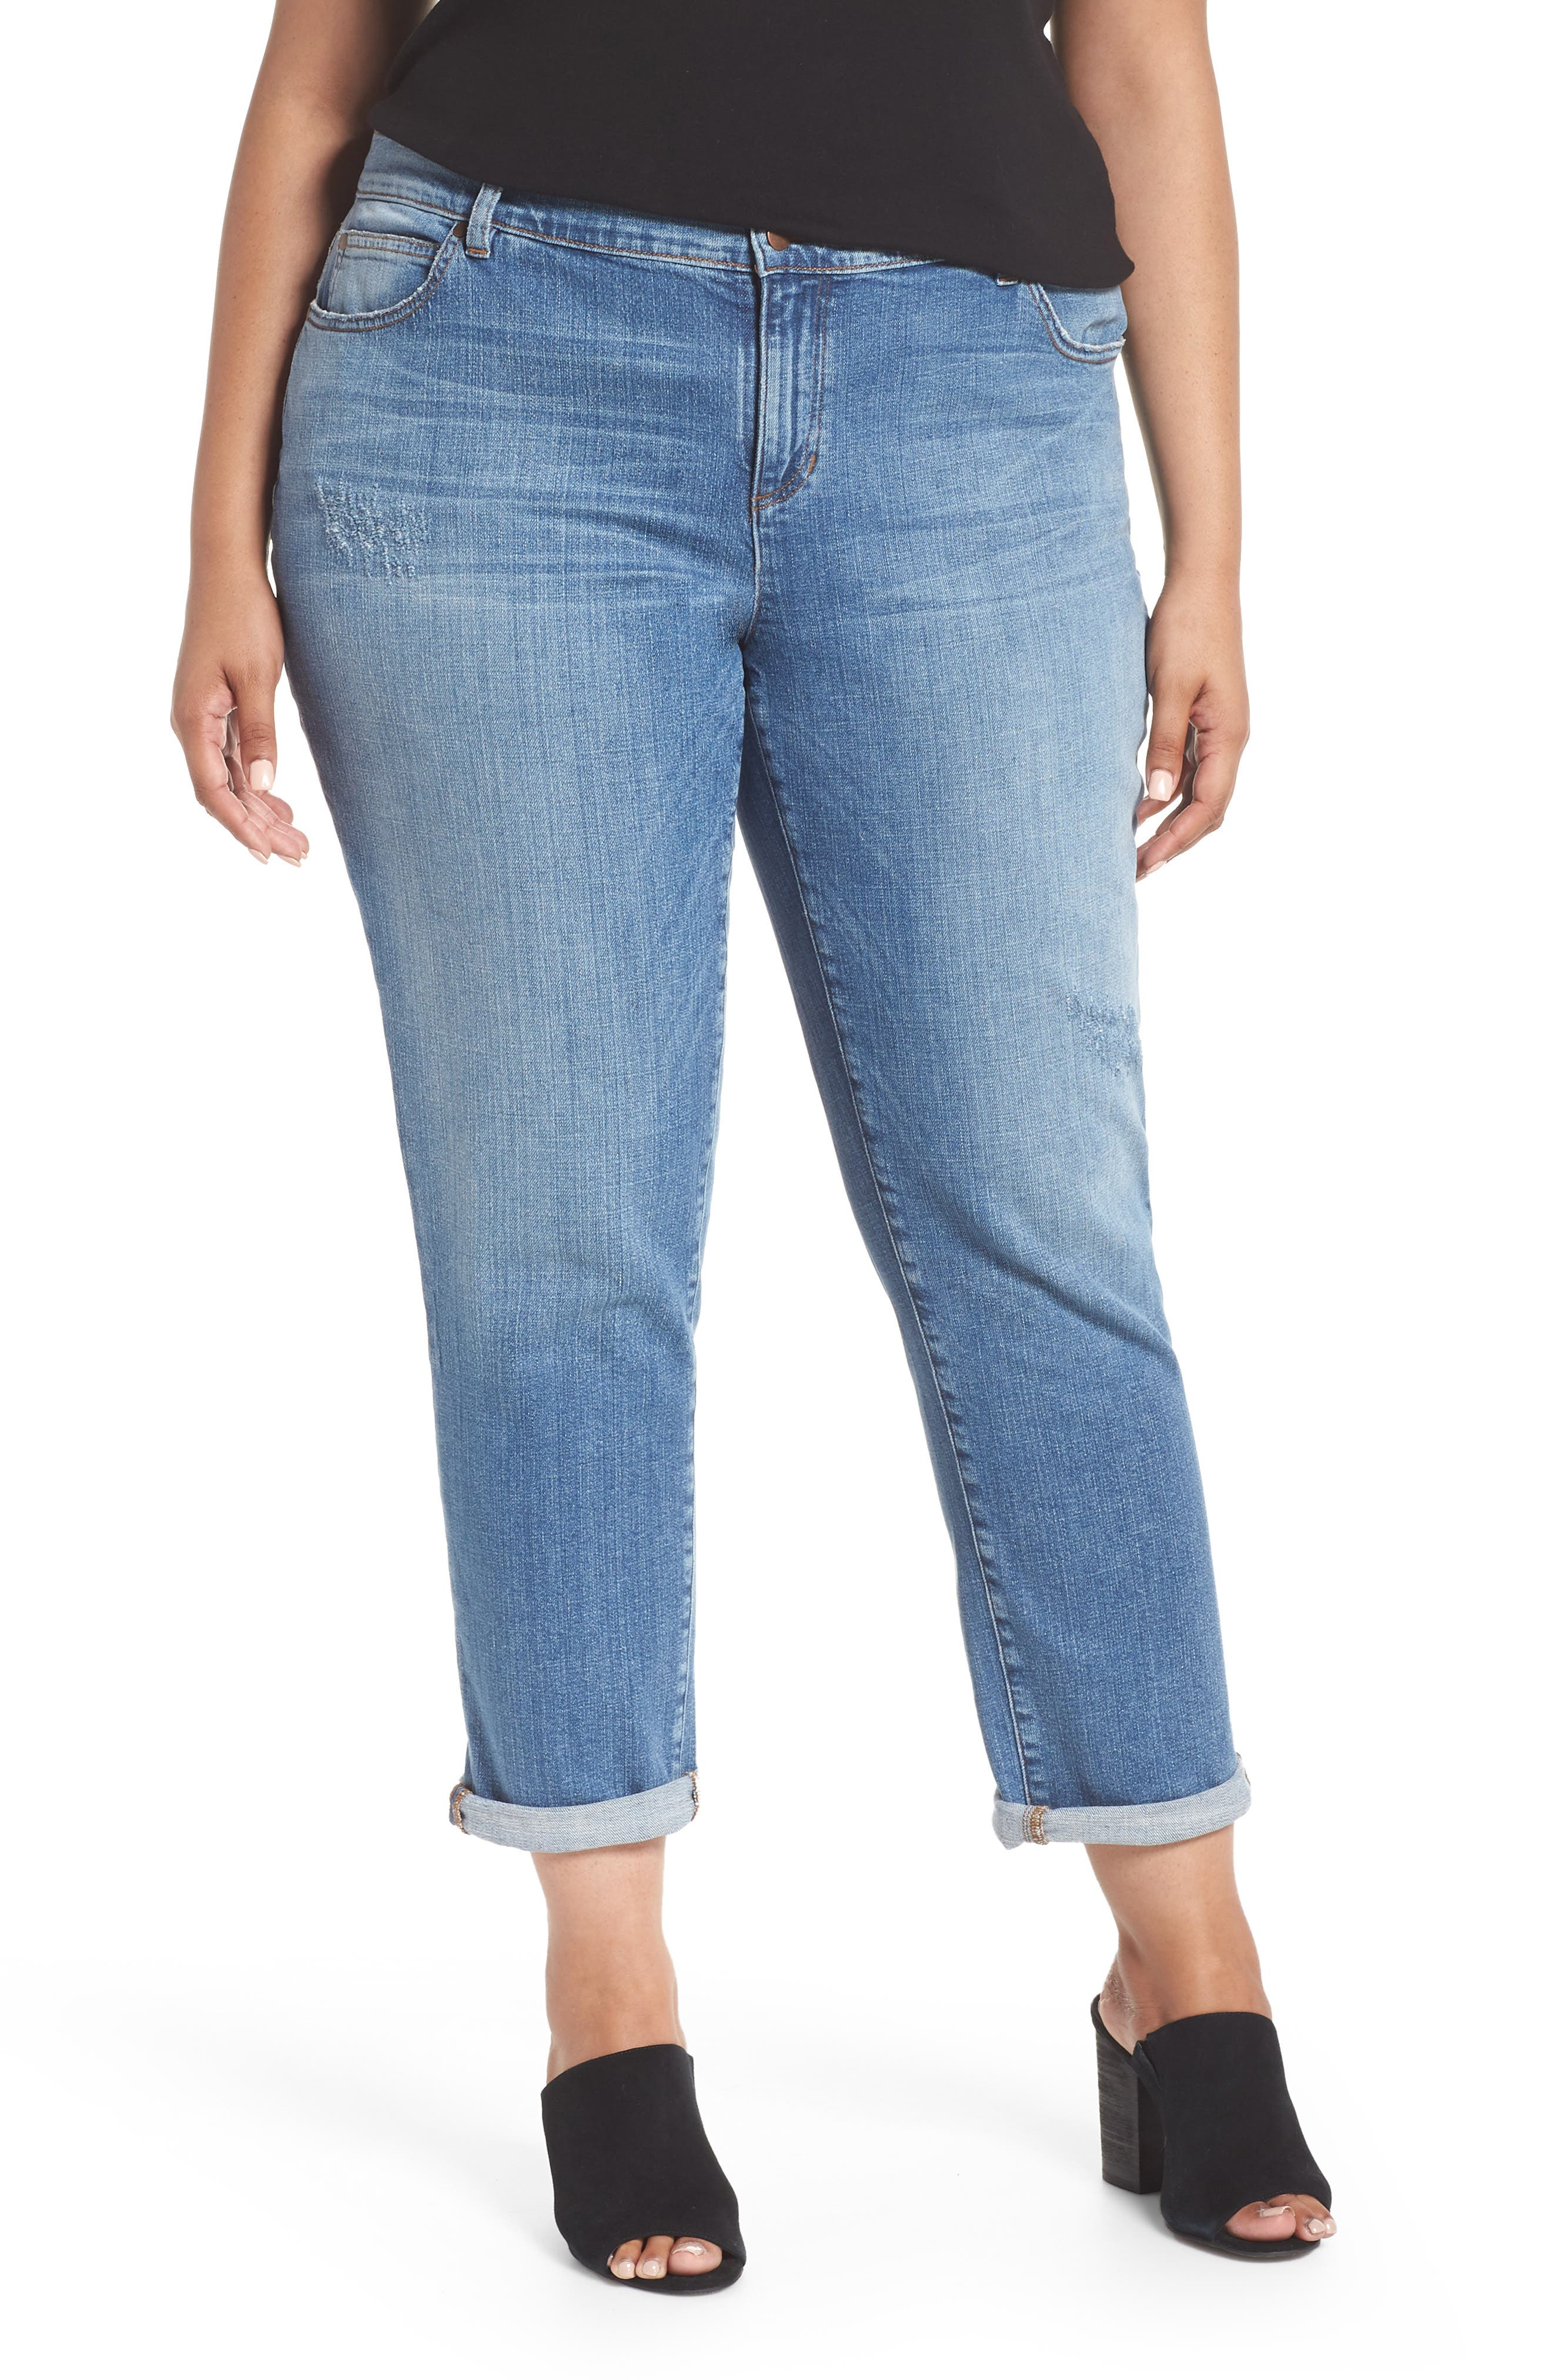 EILEEN FISHER, Stretch Organic Cotton Boyfriend Jeans, Main thumbnail 1, color, ABRADED SKY BLUE